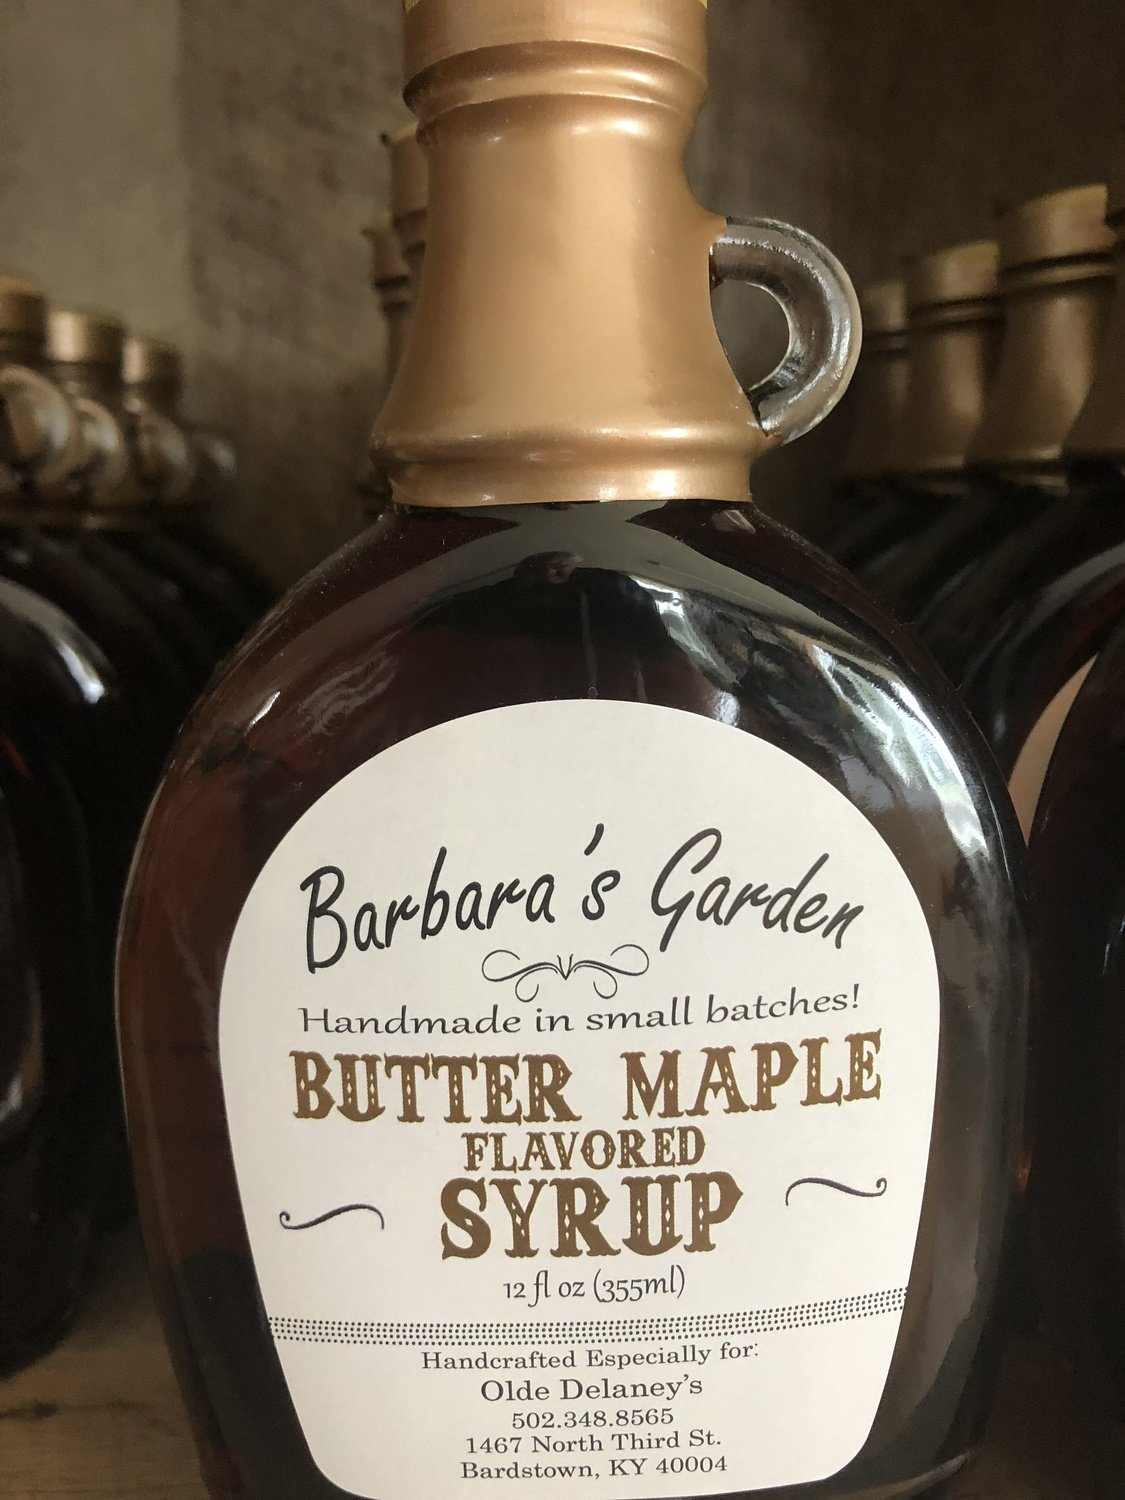 Barbara's Garden Butter Maple Flavored Syrup 12 oz